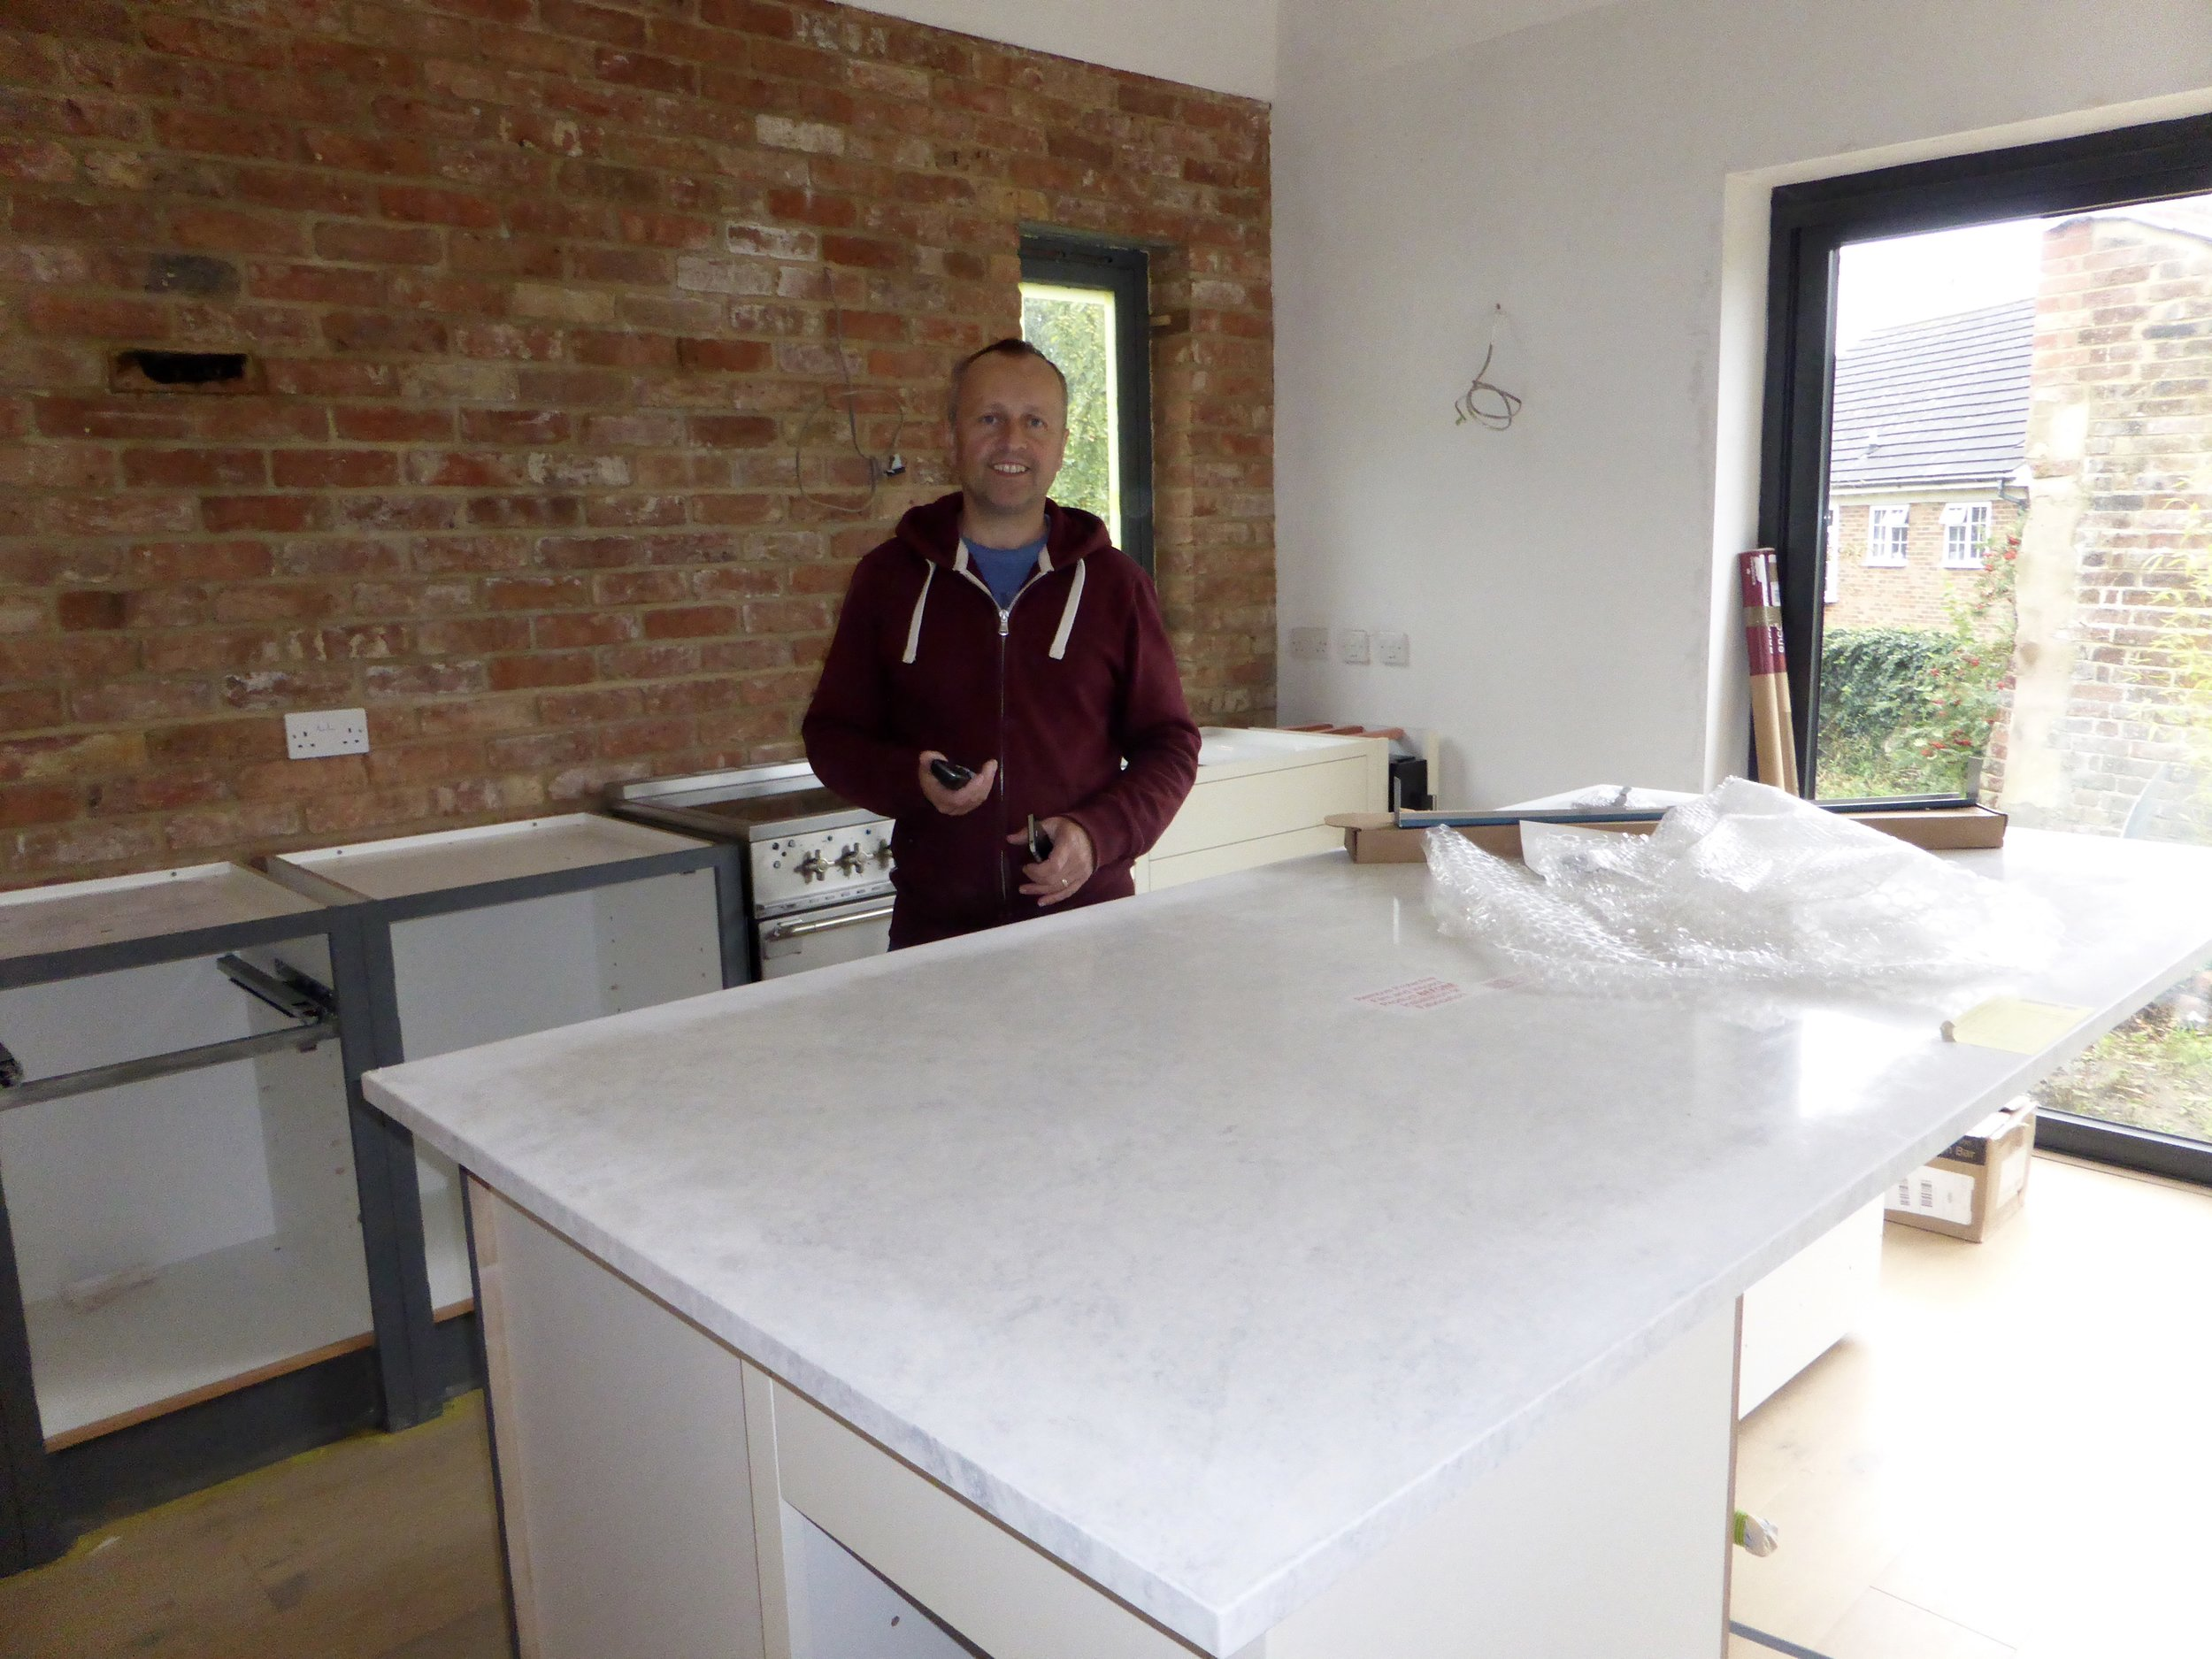 Jim happy to finally have the worktops arrive! They are Encore solid surface composite worktops from   Bushboard..  ... Another budget friendly option as the composite, rather than being solid all the way through, is wrapped around an inner core and therefore gives you all the same qualities as full composite worktops but at a much cheaper price